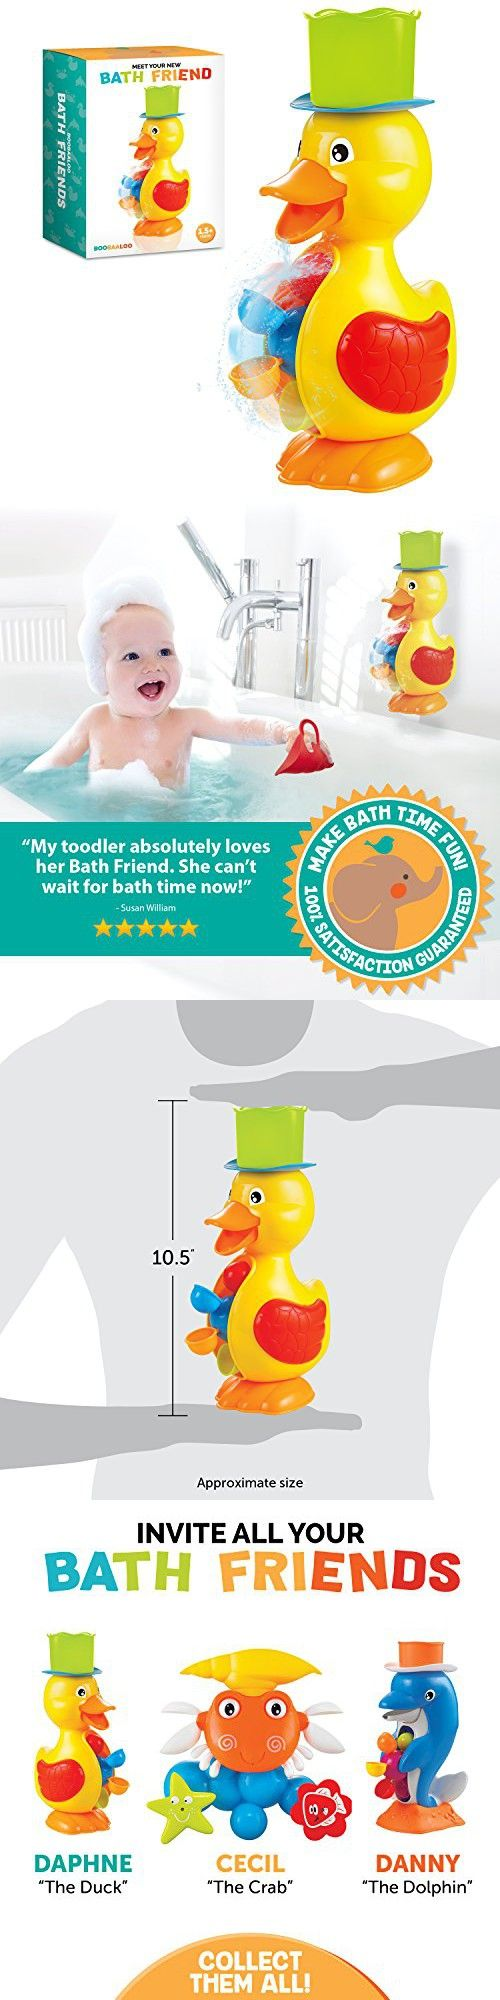 Baby toys images cartoon  Bath Friends Baby Bath Toys For Safe Educational Interactive and